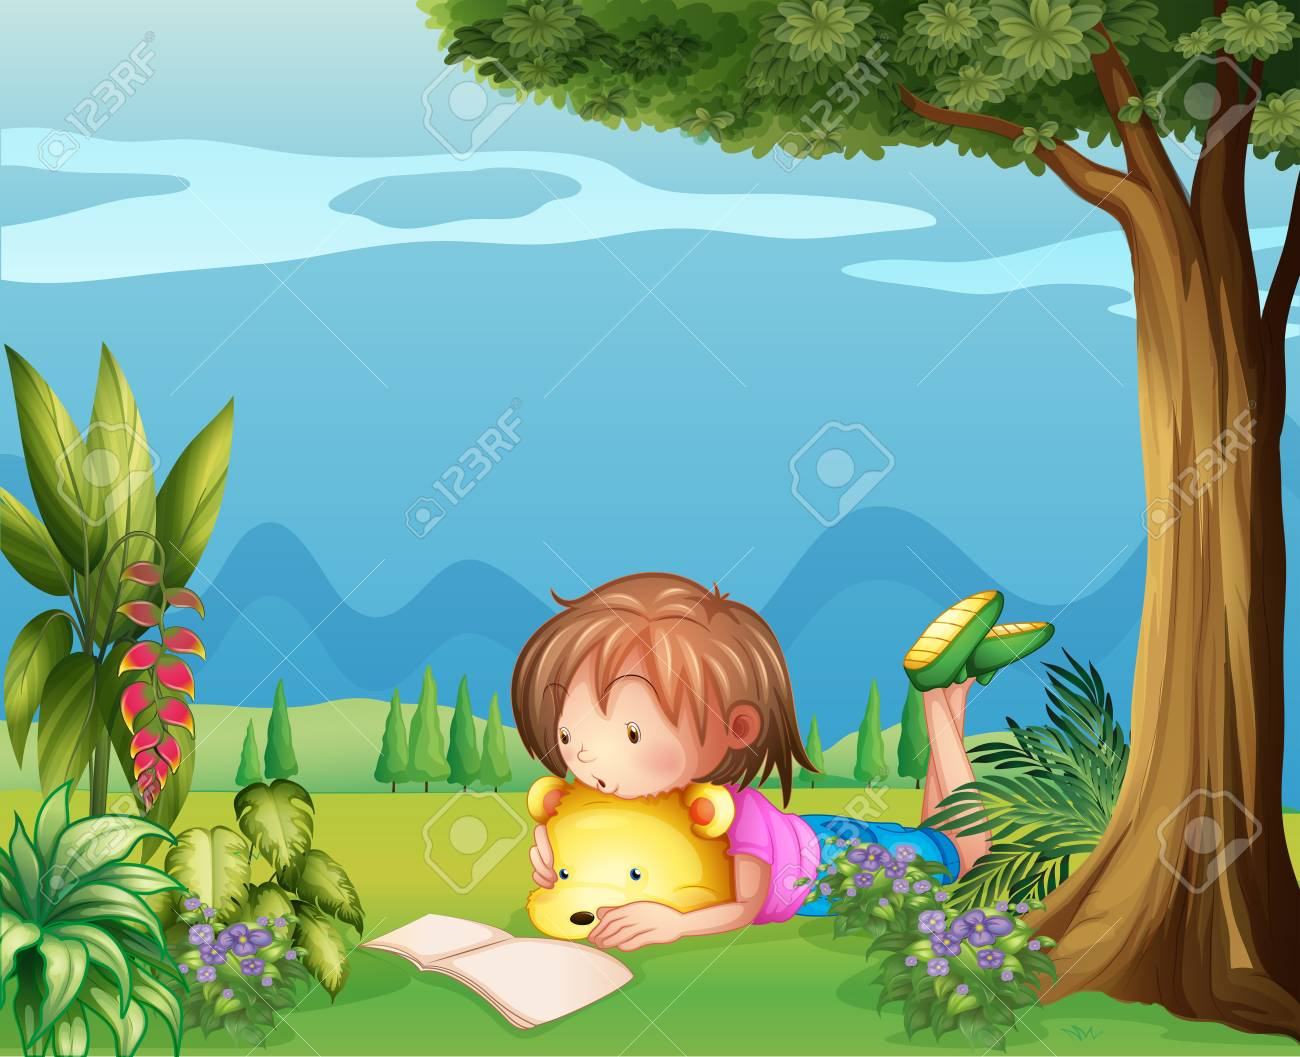 Illustration of a girl with a bear reading a book Stock Vector - 18053158